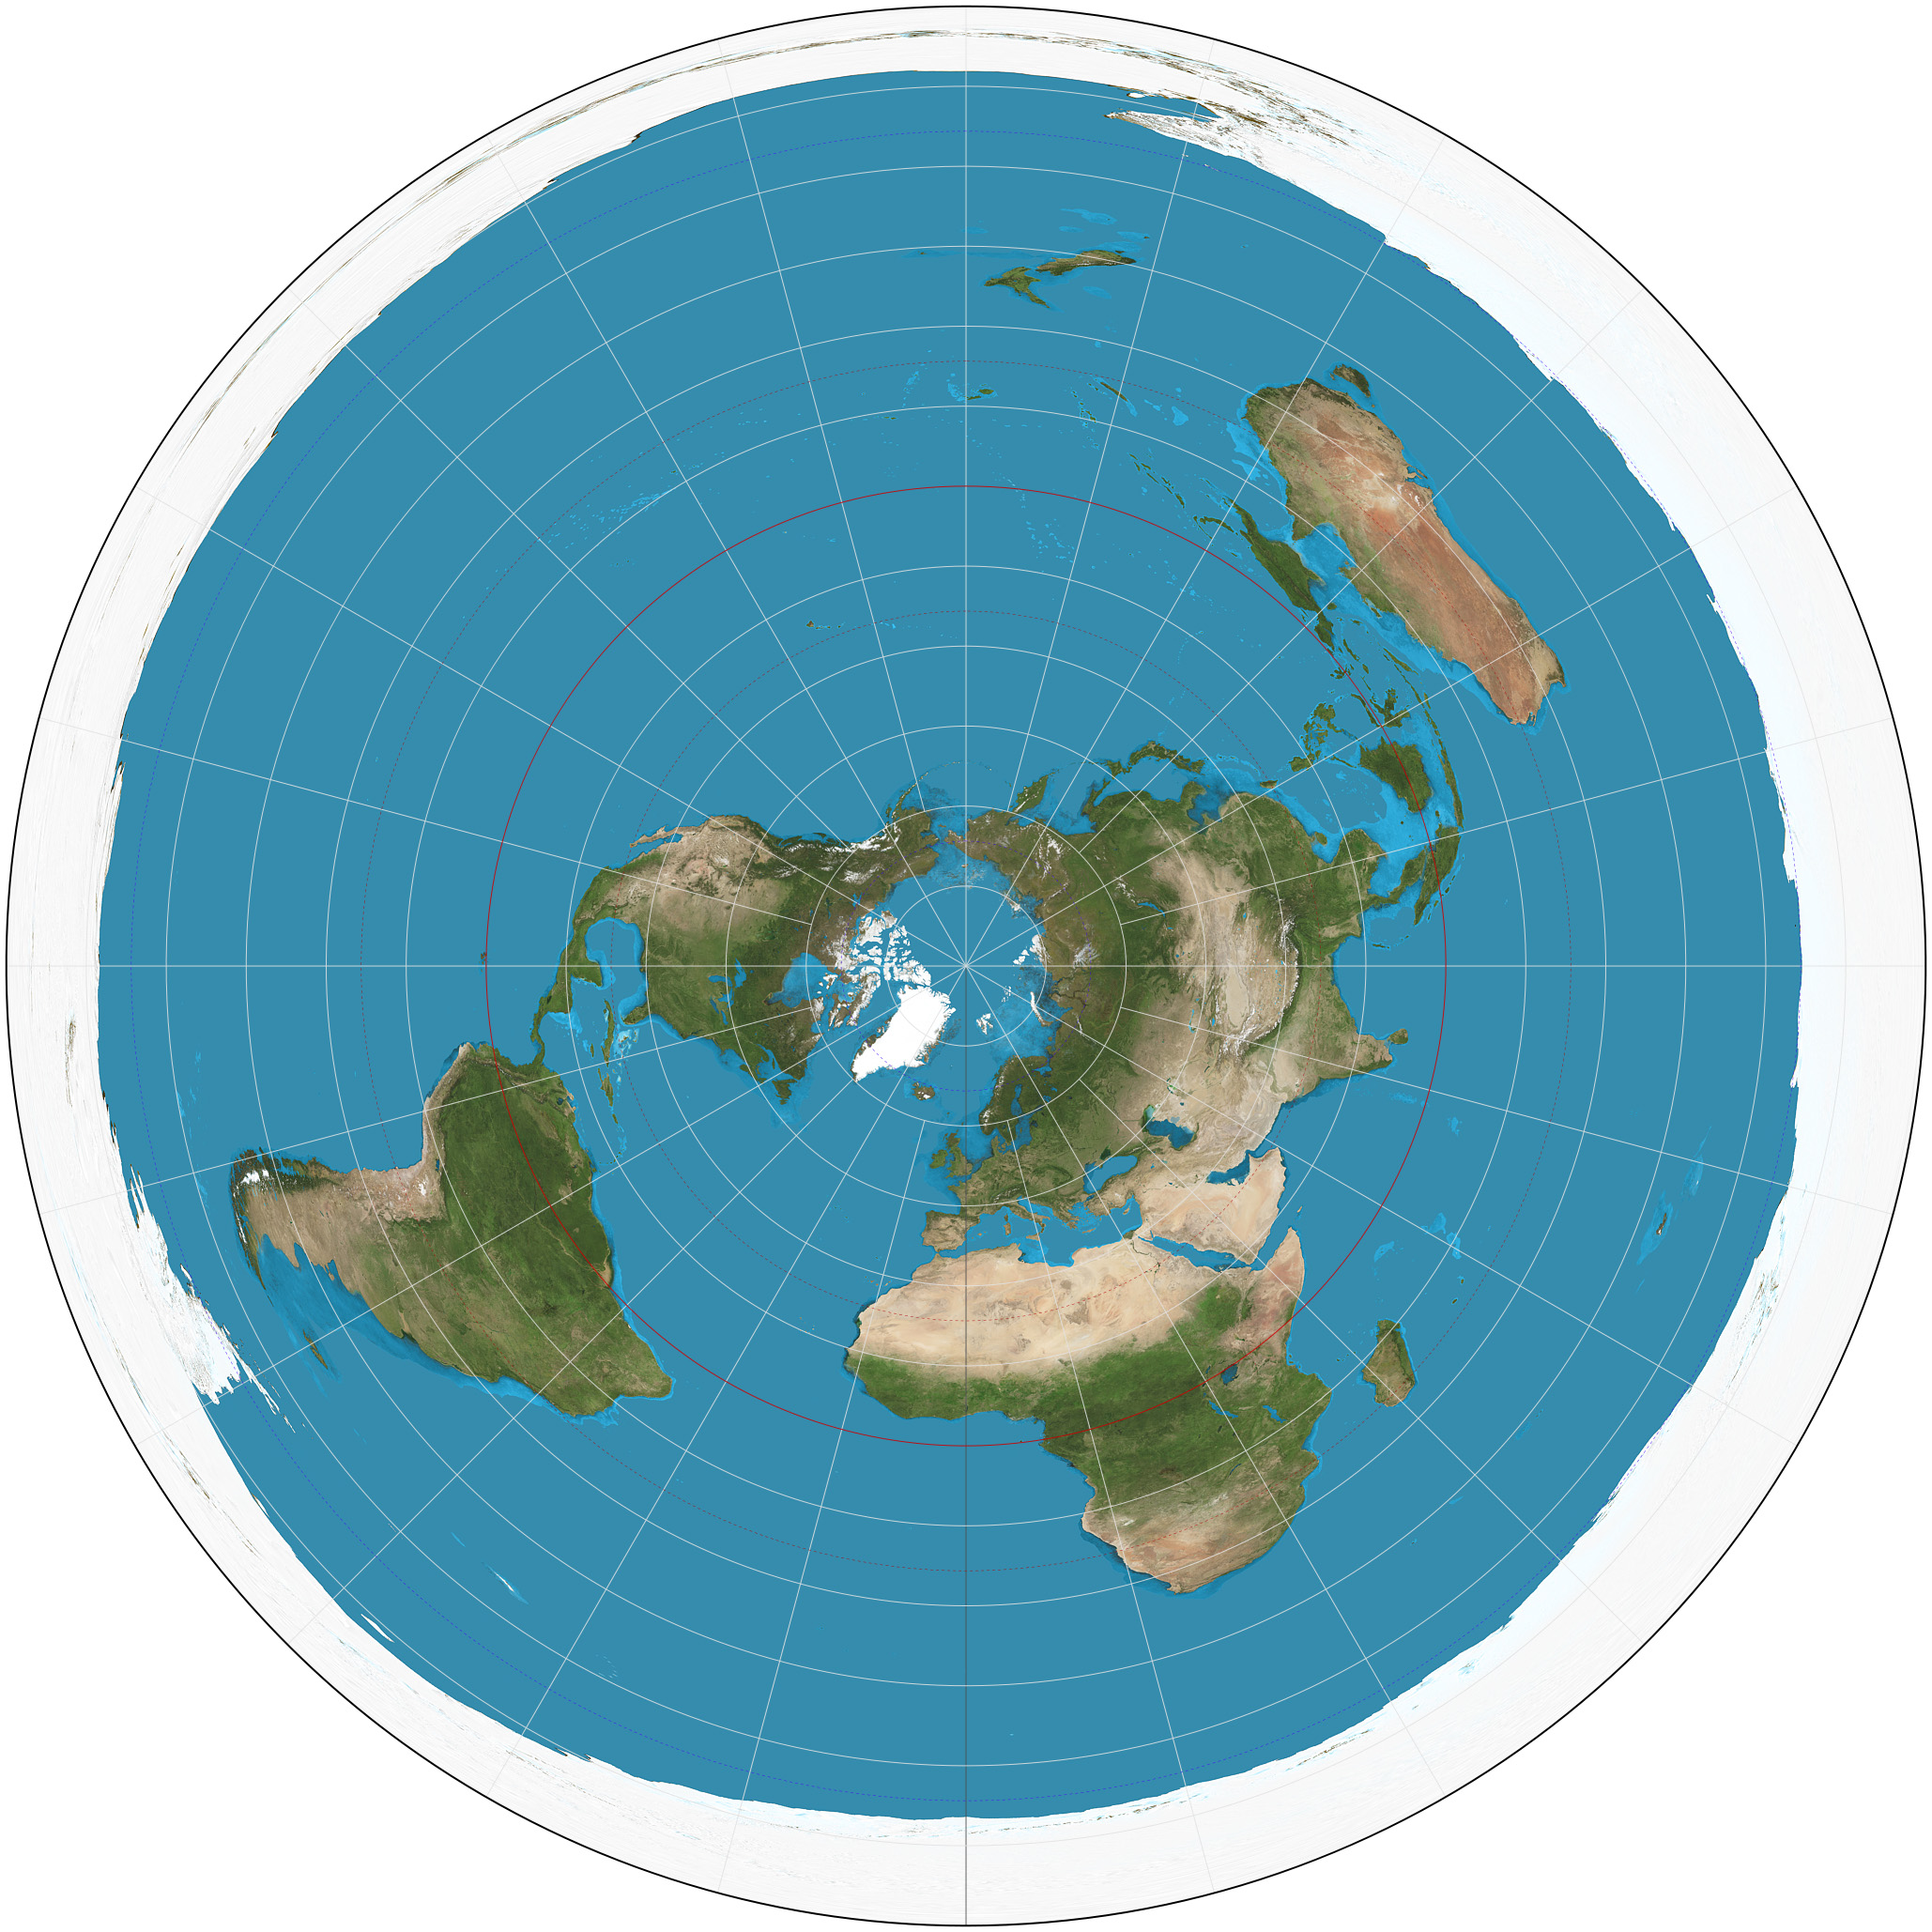 Azimuthal equidistant projection.